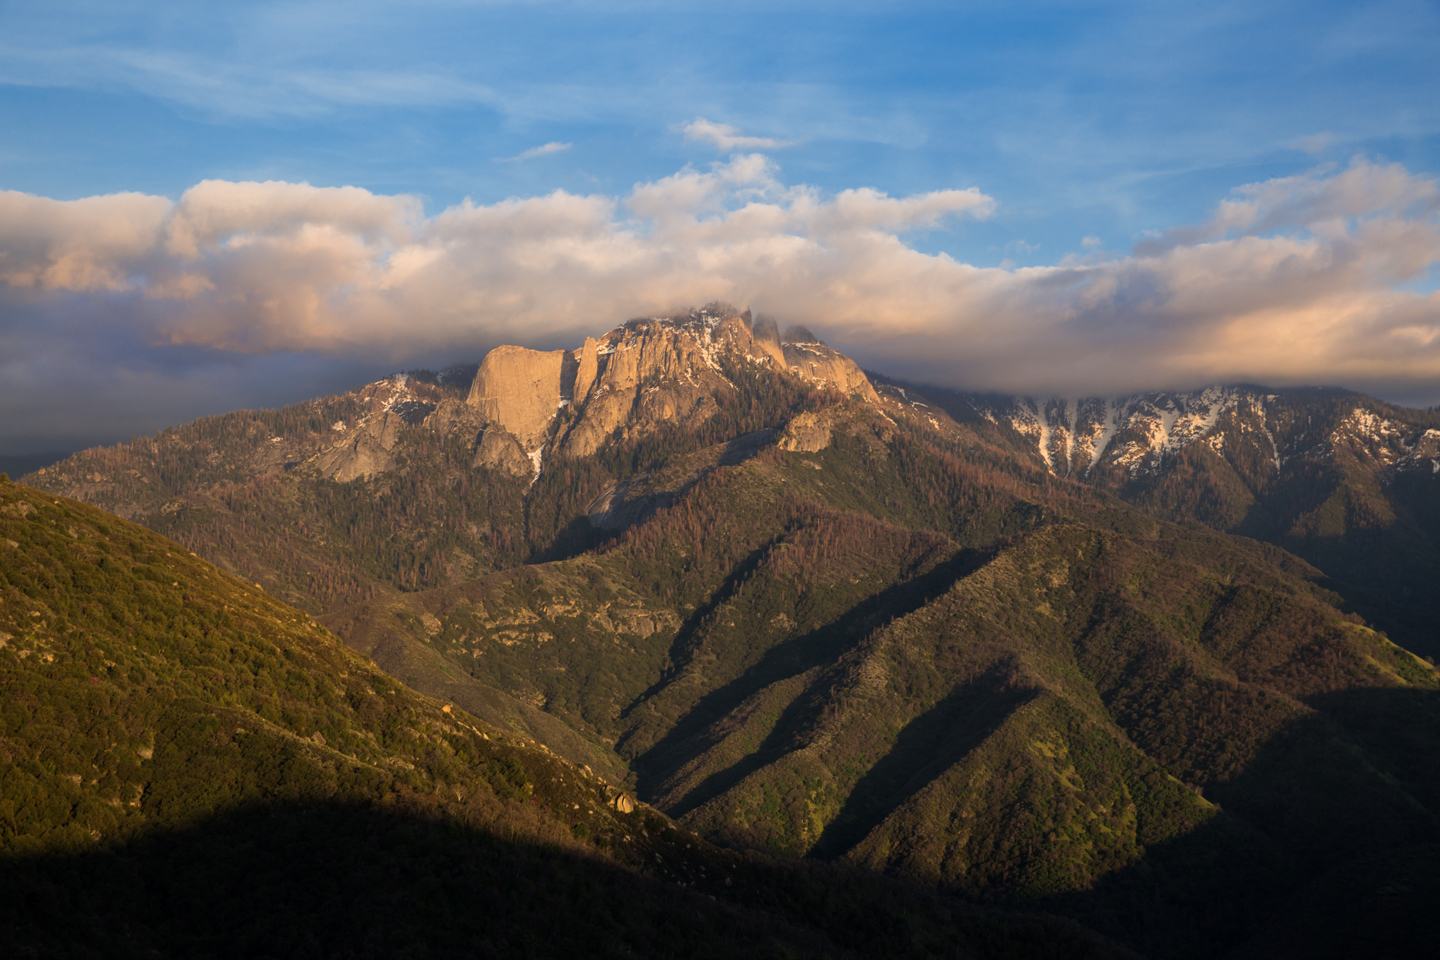 Sequoia-National-Park-Rocks-Lookout-Clouds-Wide